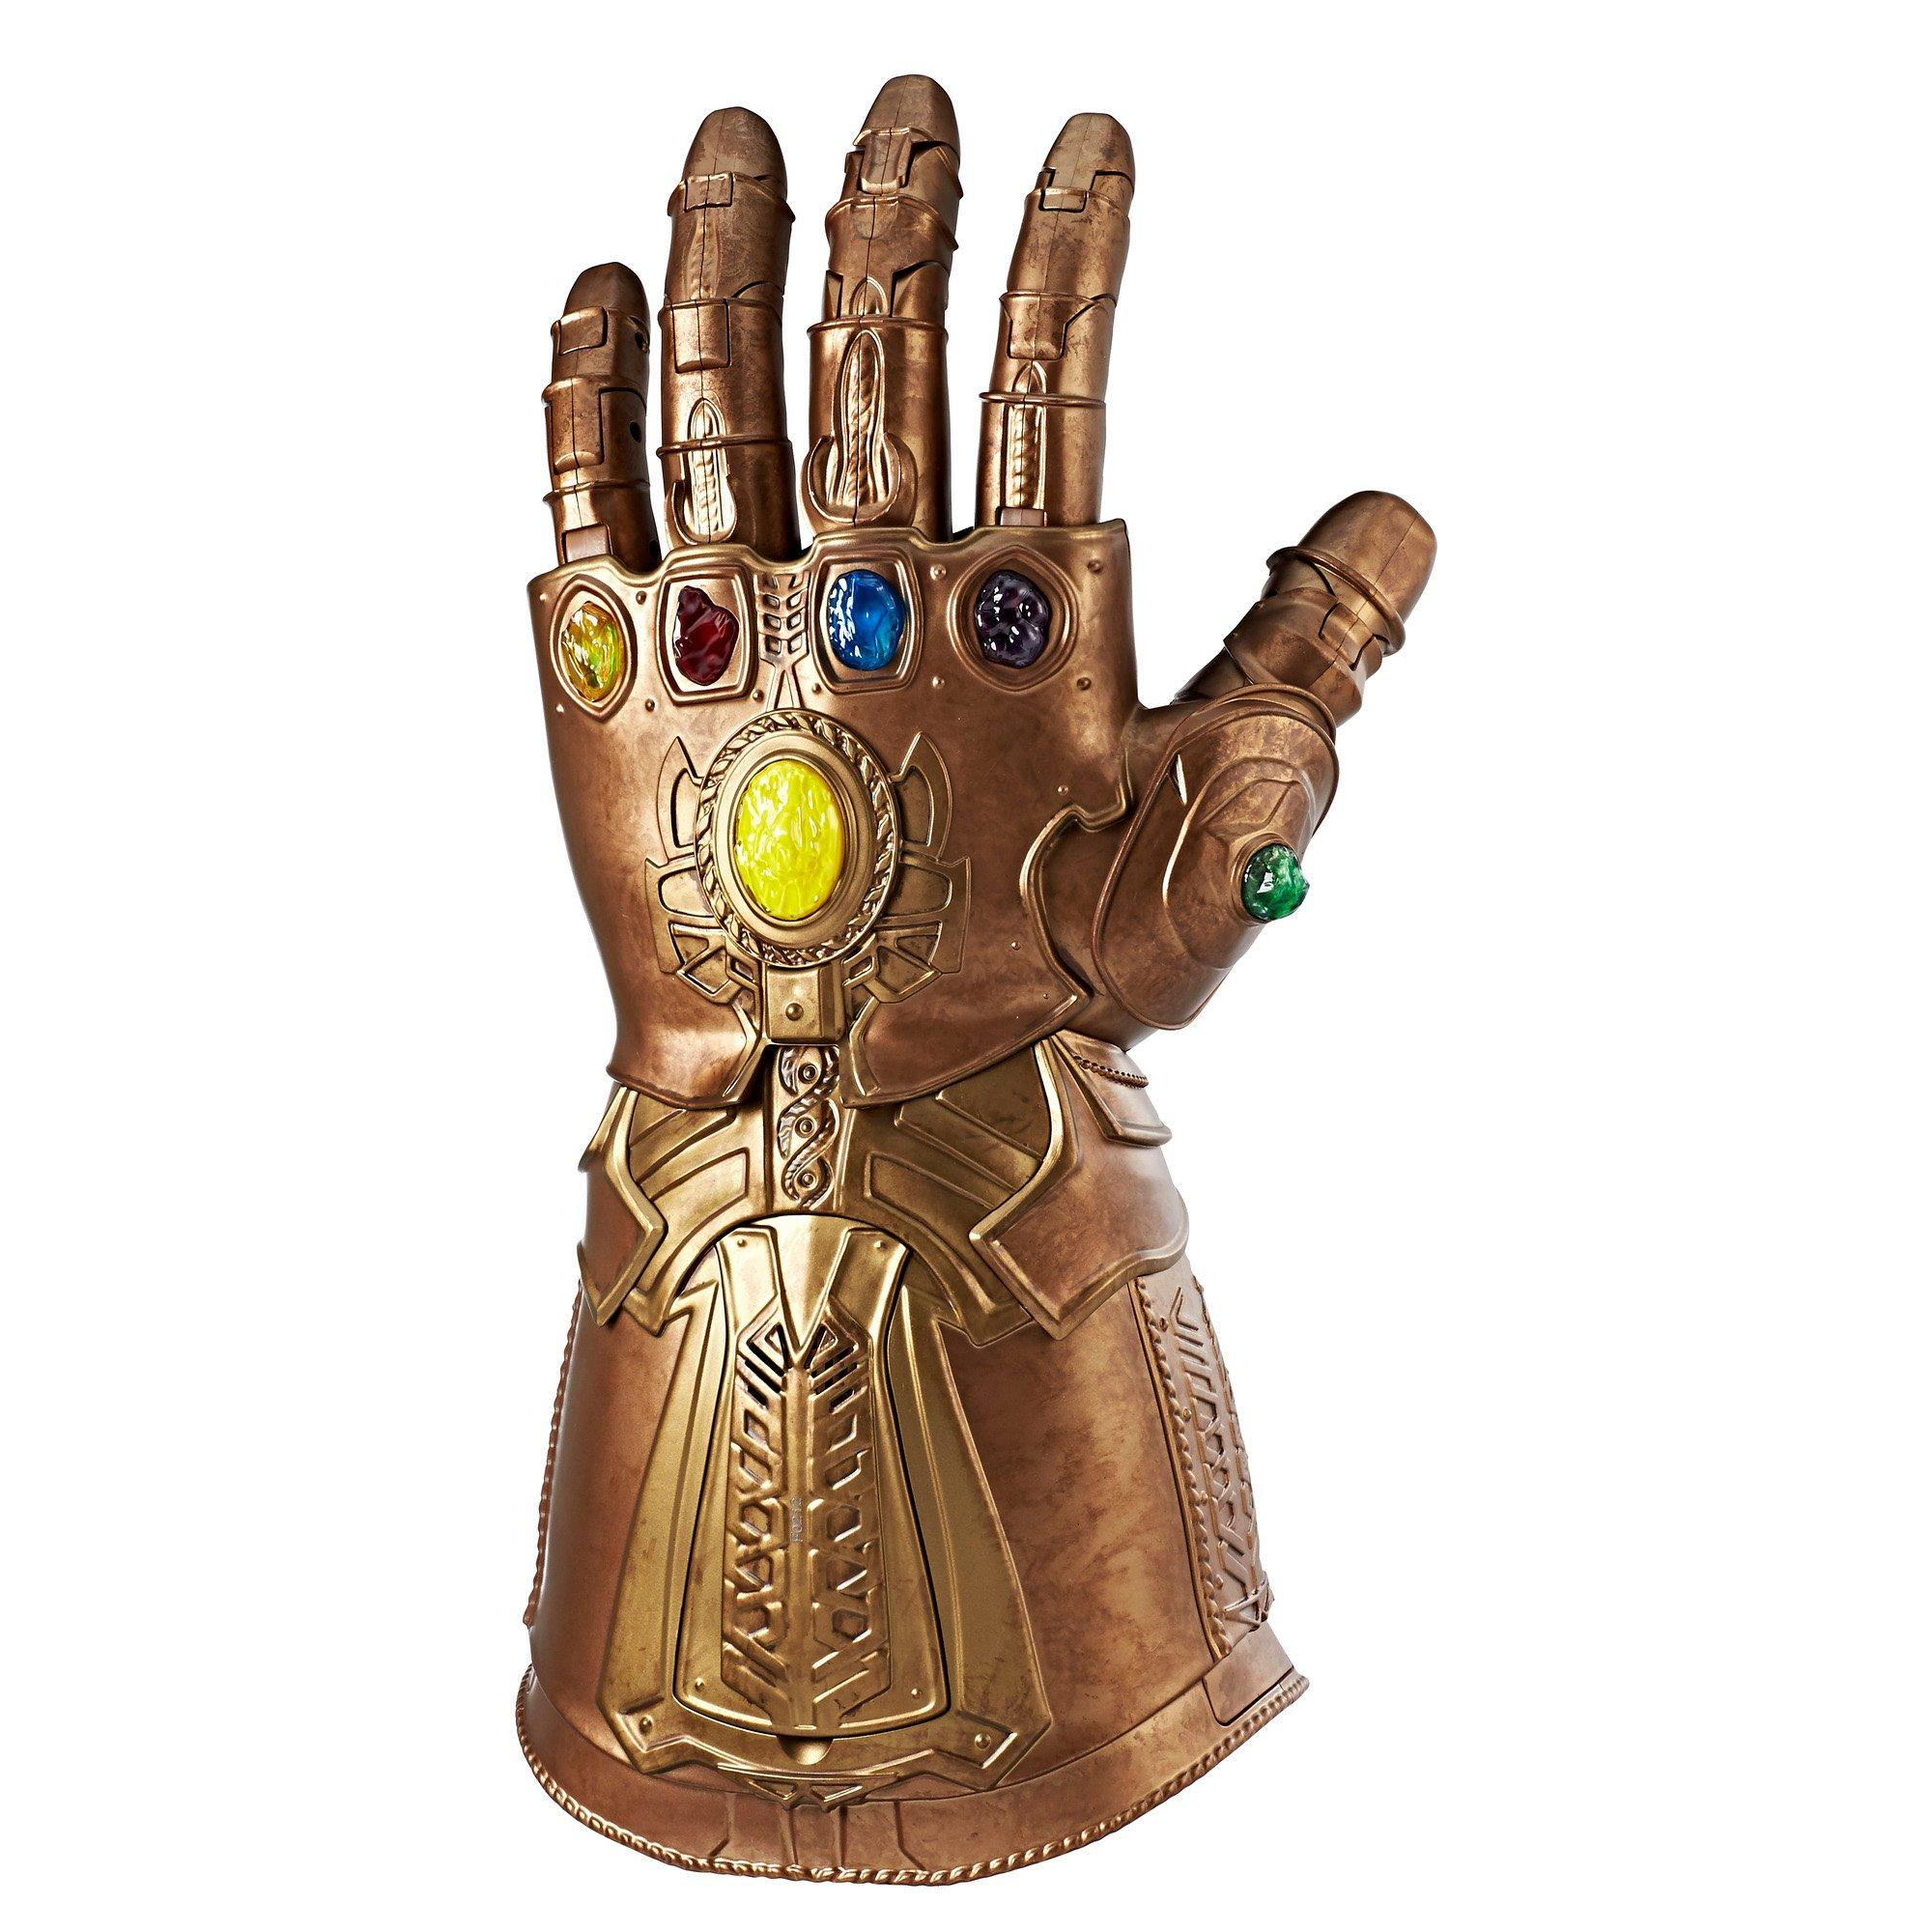 Marvel Legends Avengers Infinity Stone Interactive Electronic Fist Toy for Kids